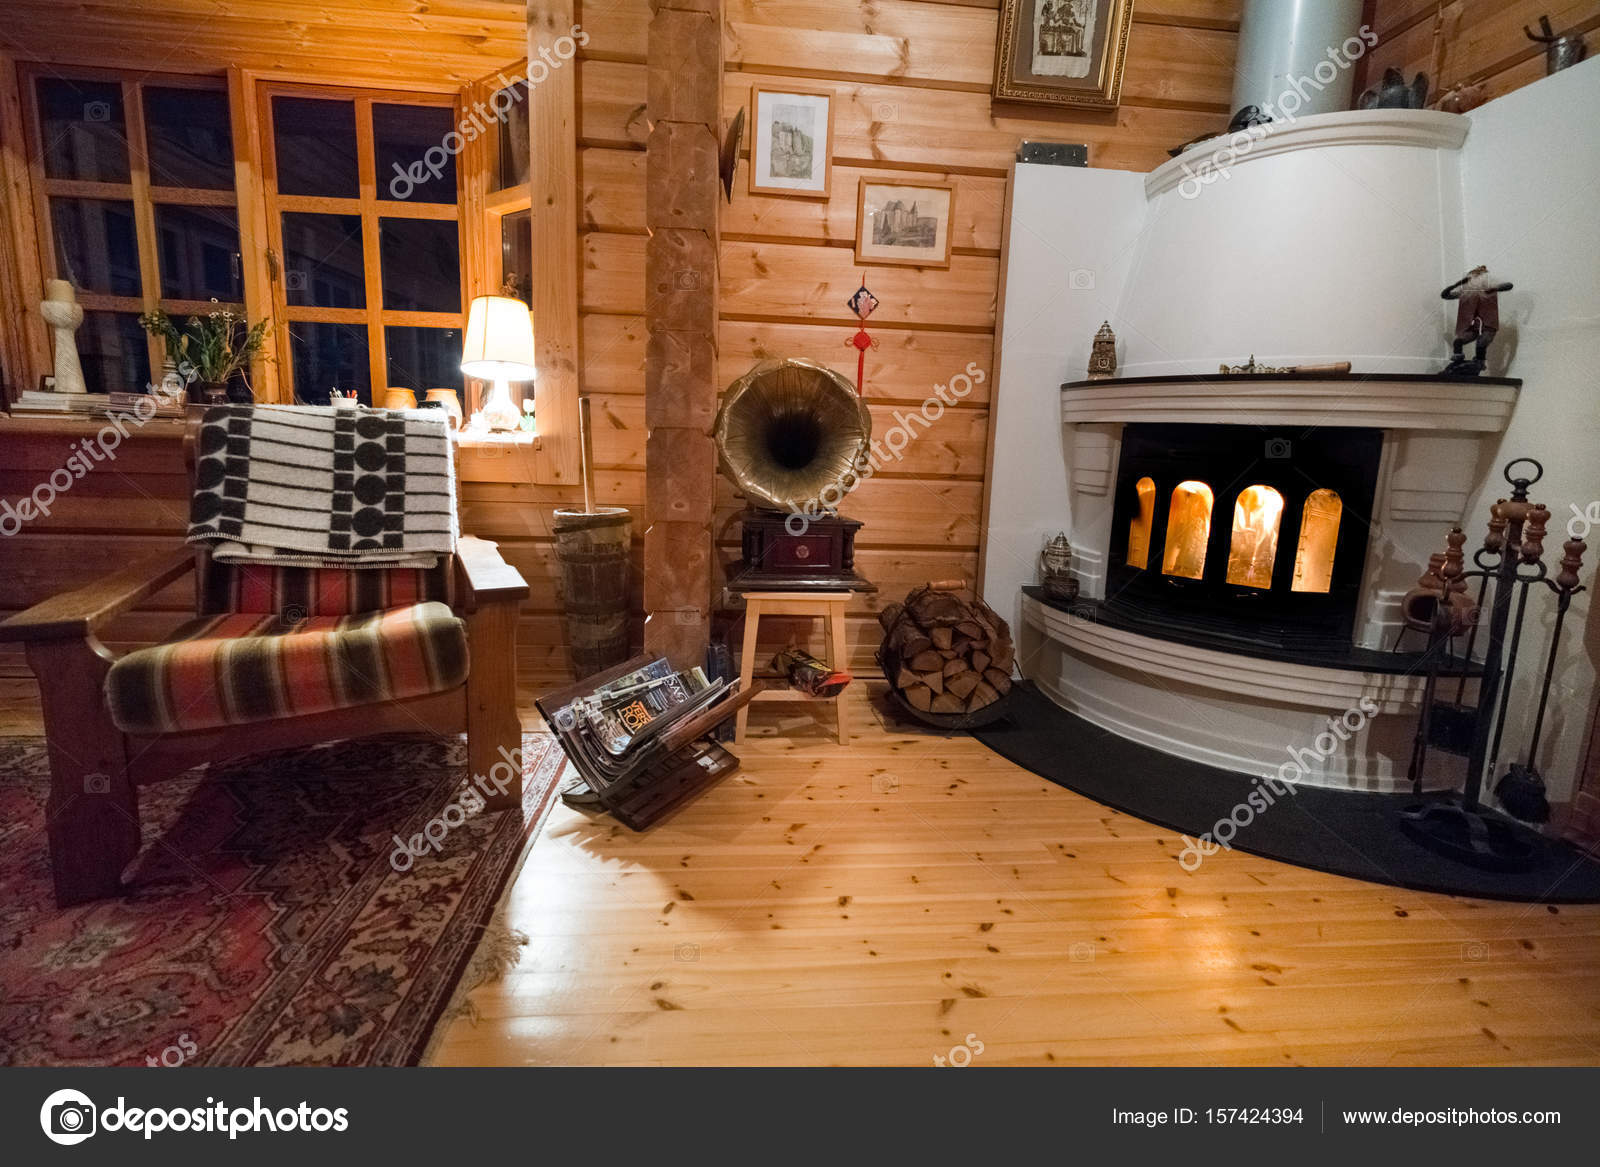 Cosy Living Room Log Cabin Burning Fire Iceland Europe Stock Photo Image By C Bruno135 157424394